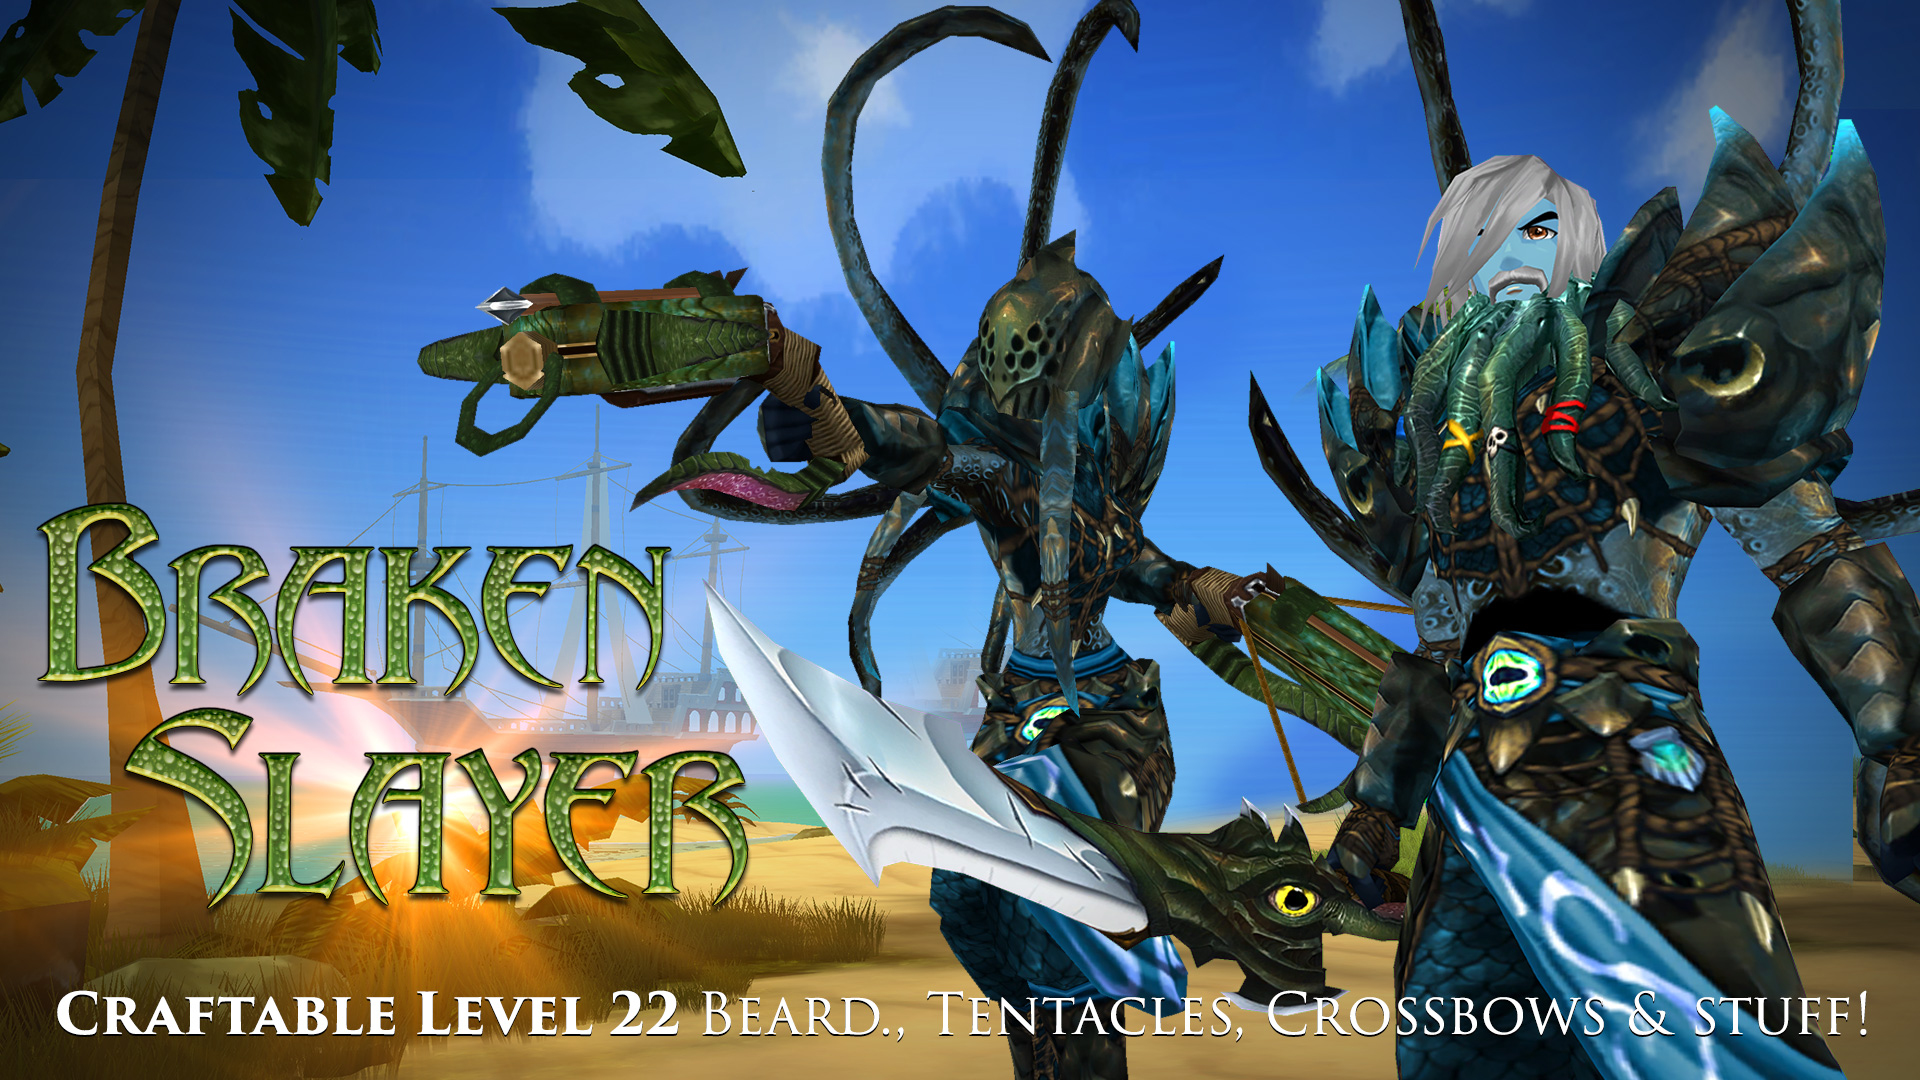 Braken Slayer Items